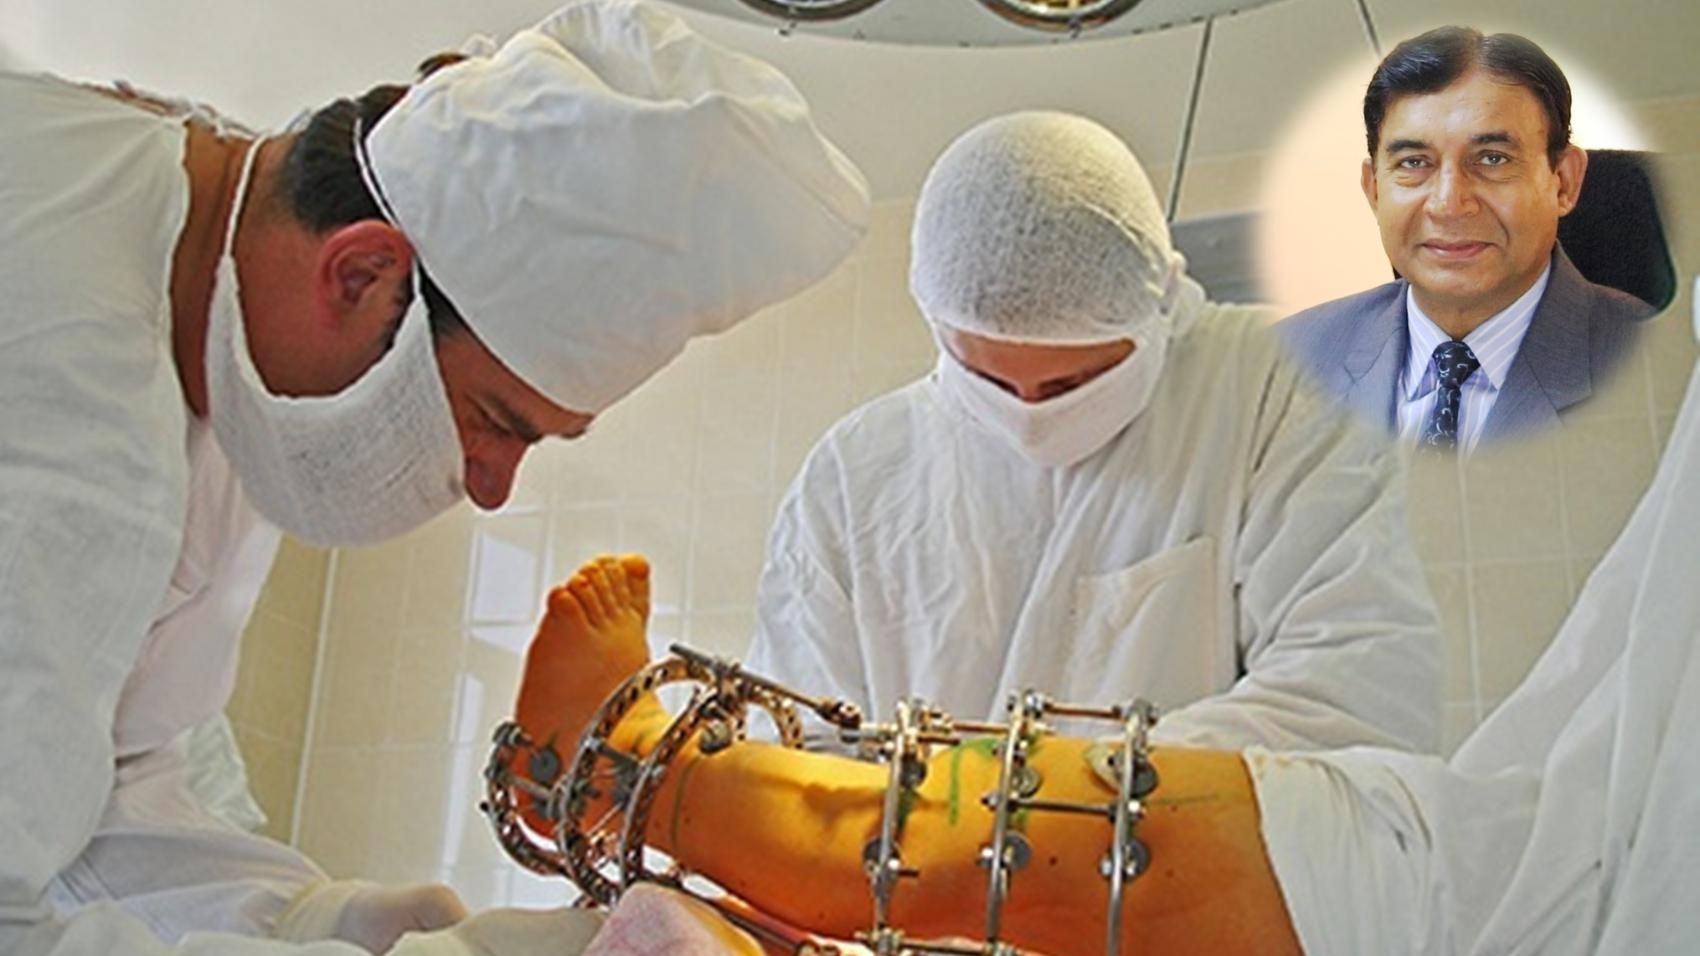 Career in Orthopedic Surgery